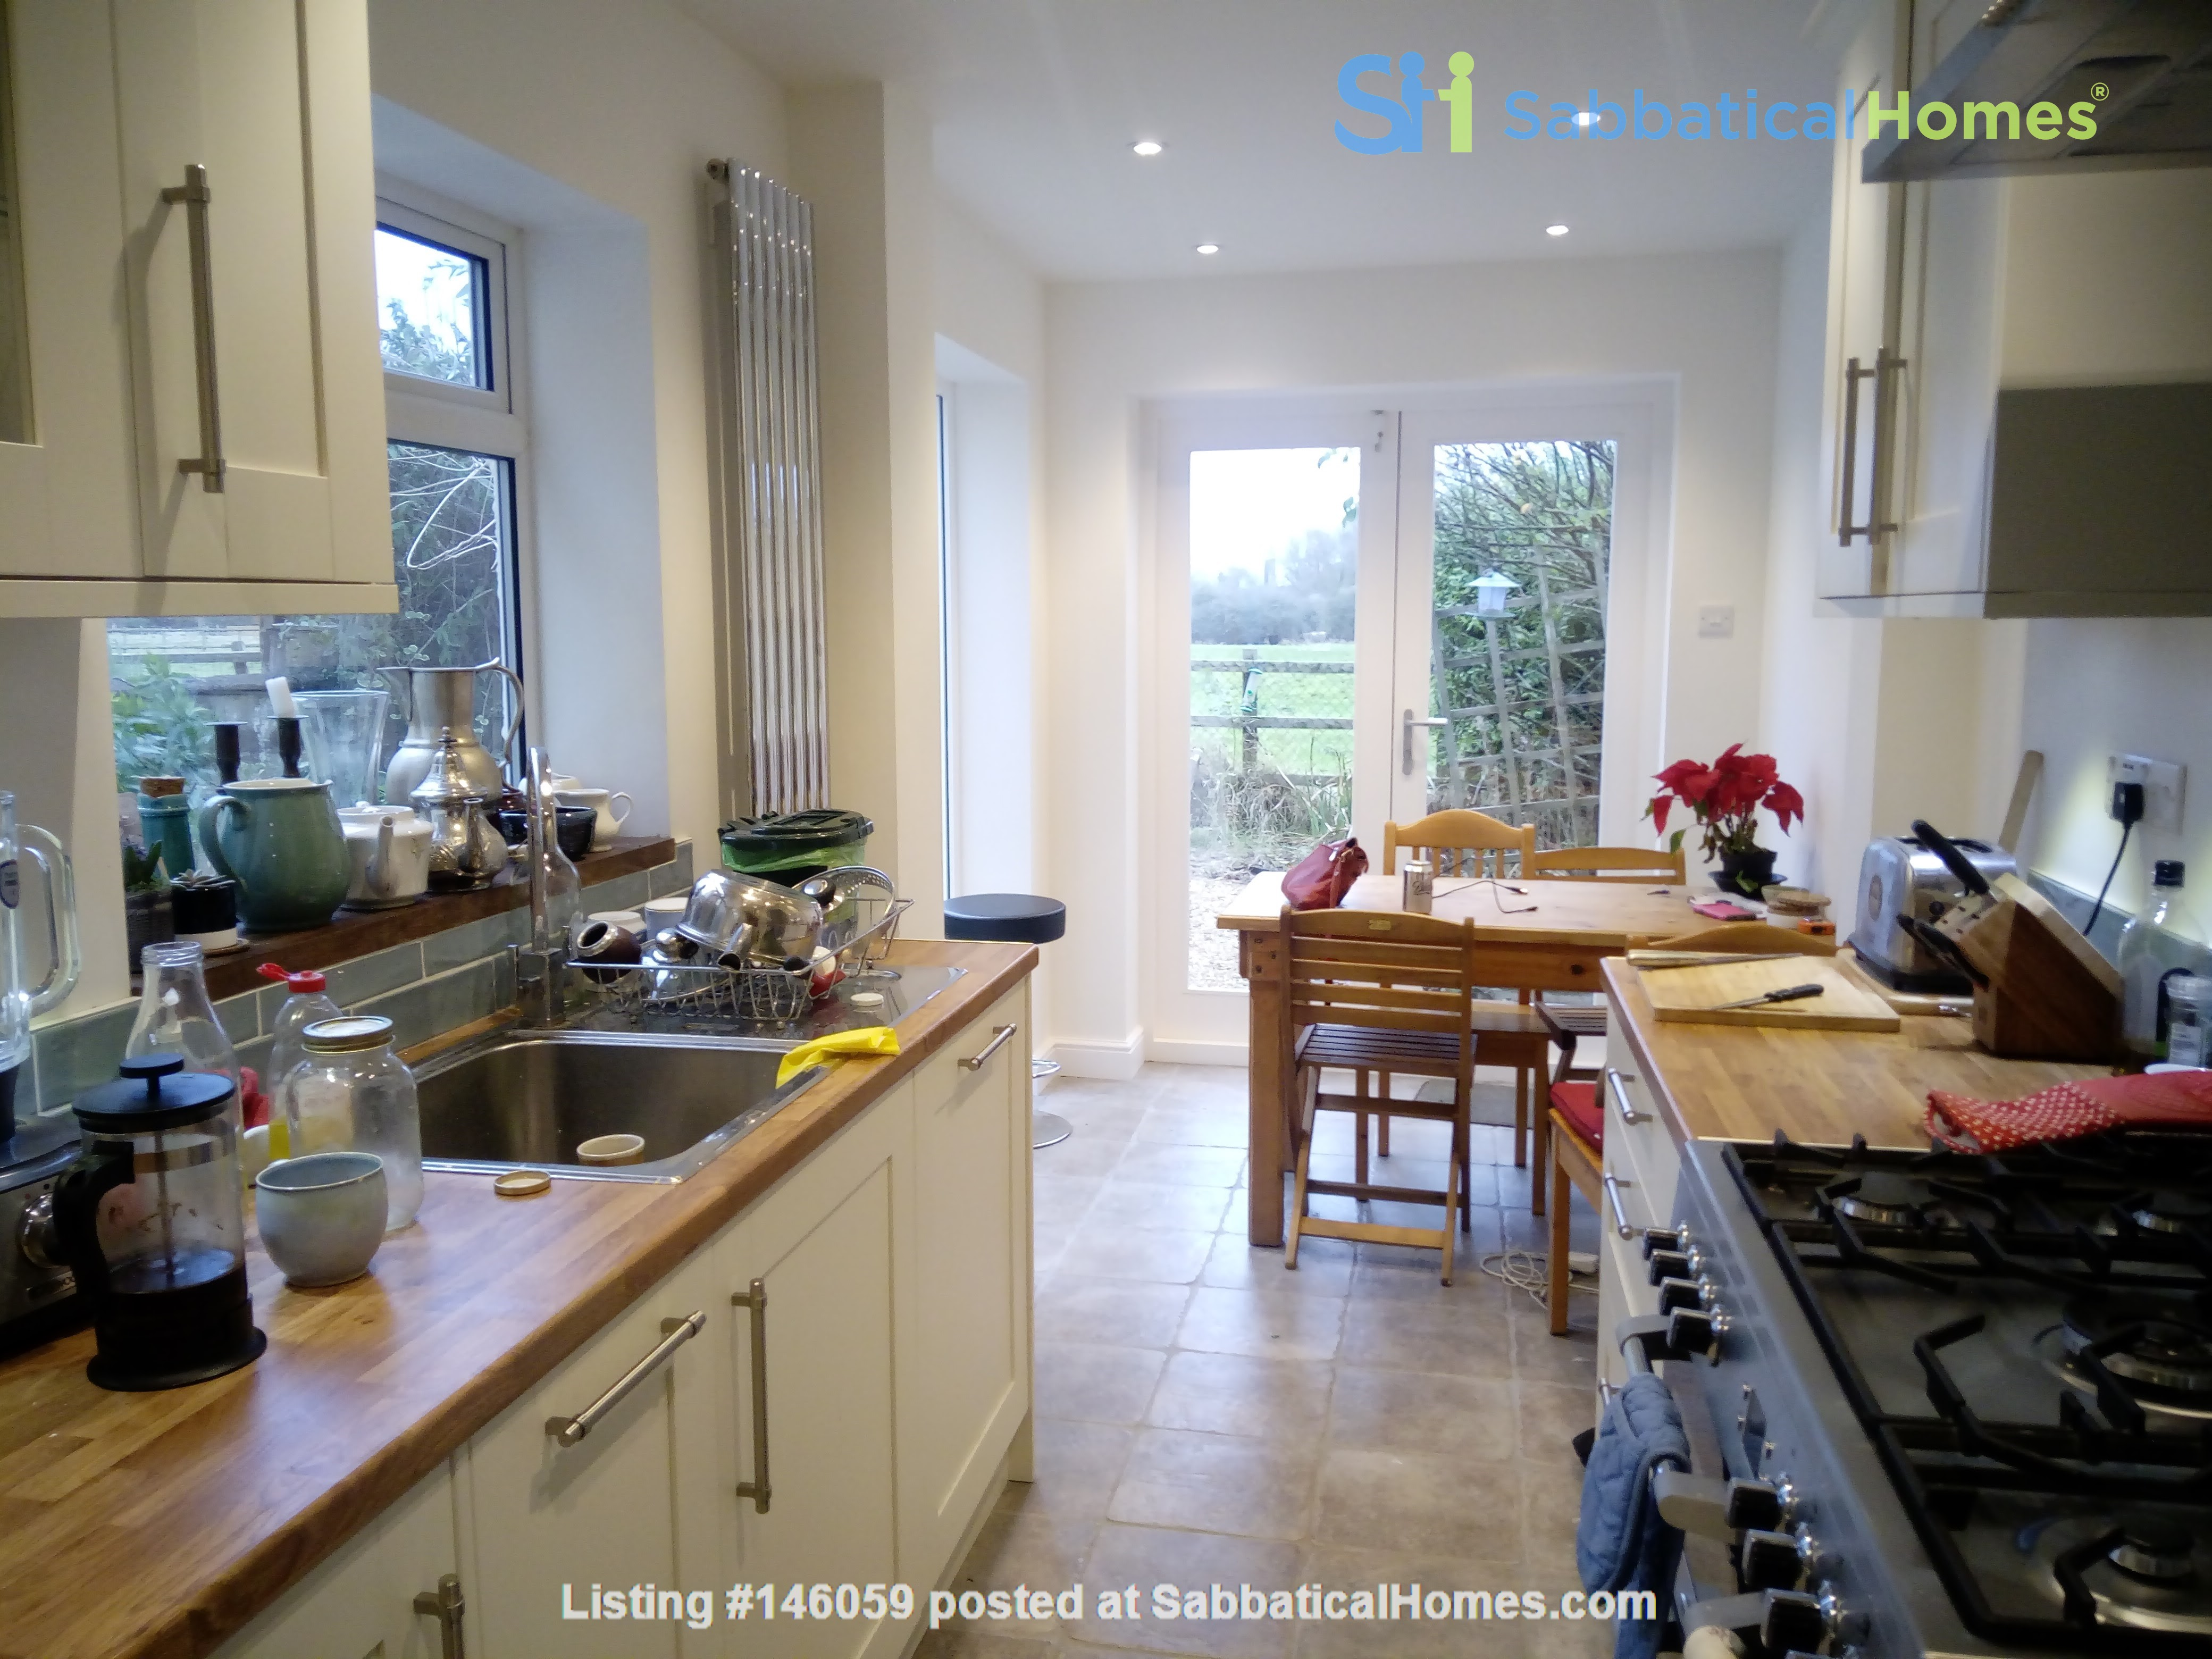 Period house overlooking meadows and oxford university park Home Rental in  3